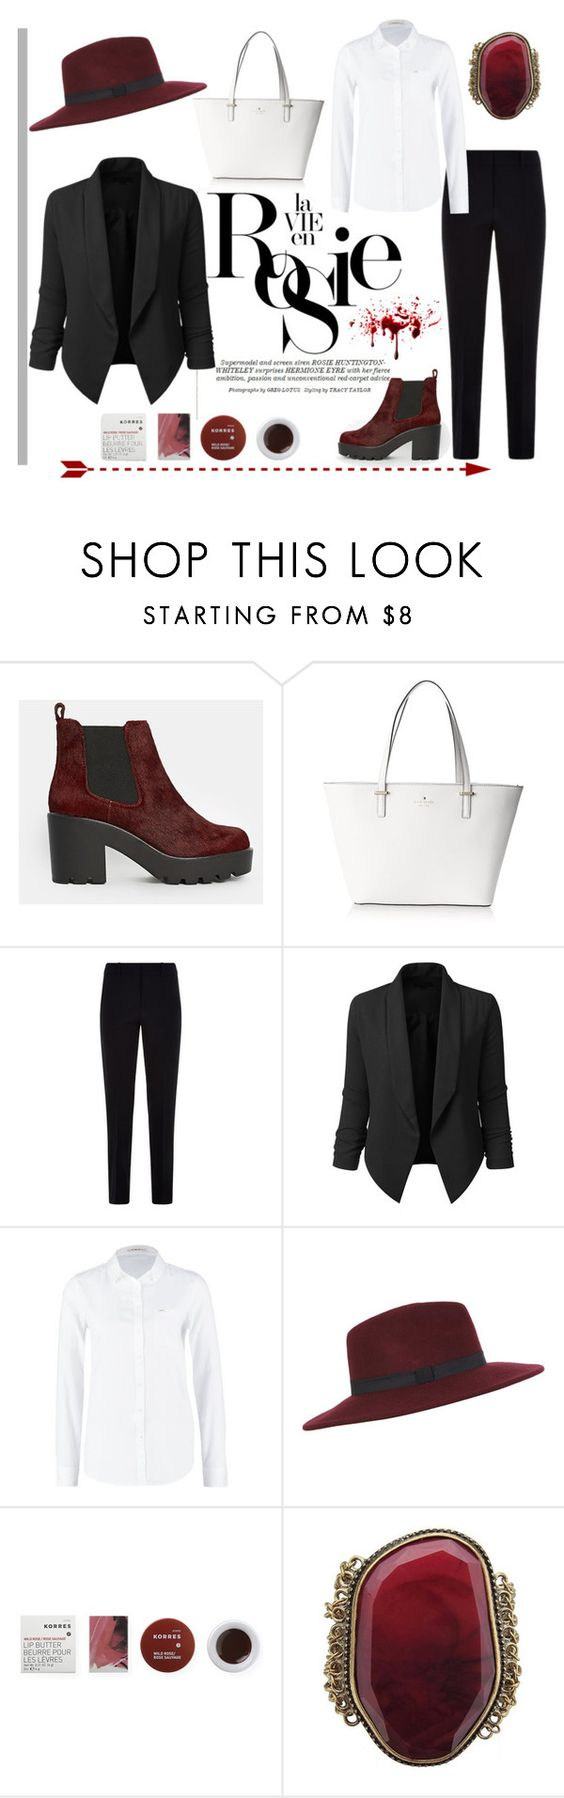 """""""Untitled #360"""" by bloploop ❤ liked on Polyvore featuring Whiteley, ASOS, Kate Spade, Armani Collezioni, Lee, Miss Selfridge, Korres, women's clothing, women and female"""